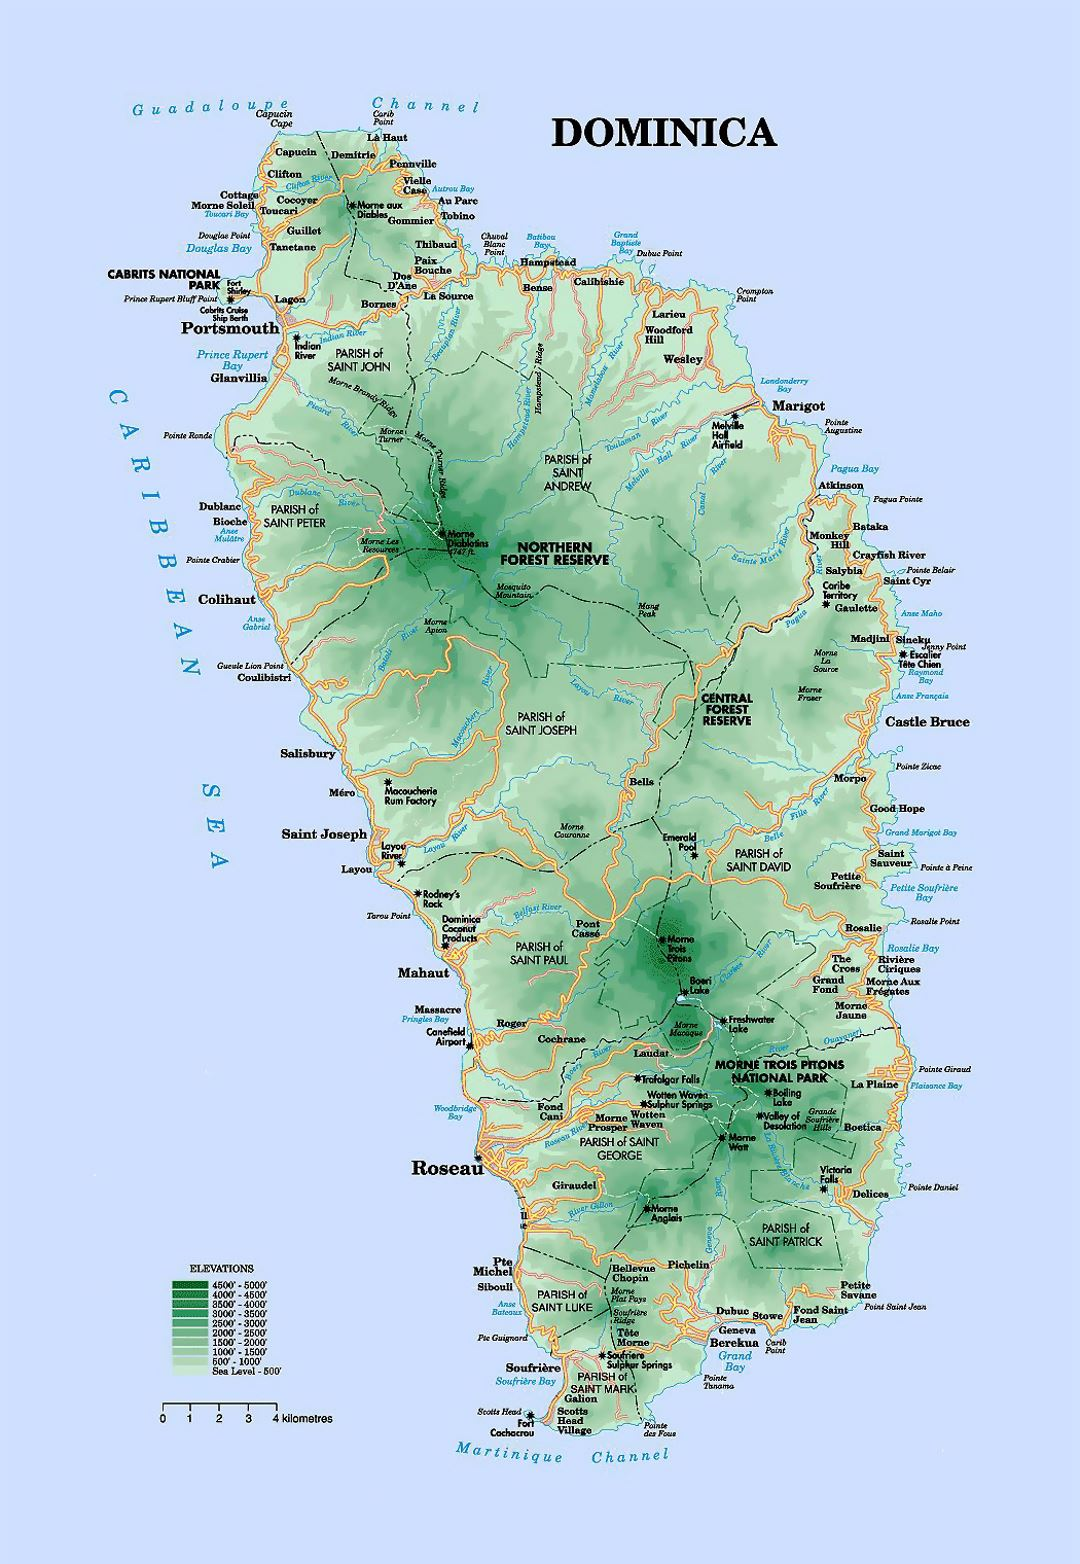 Detailed elevation map of Dominica with roads and cities Dominica